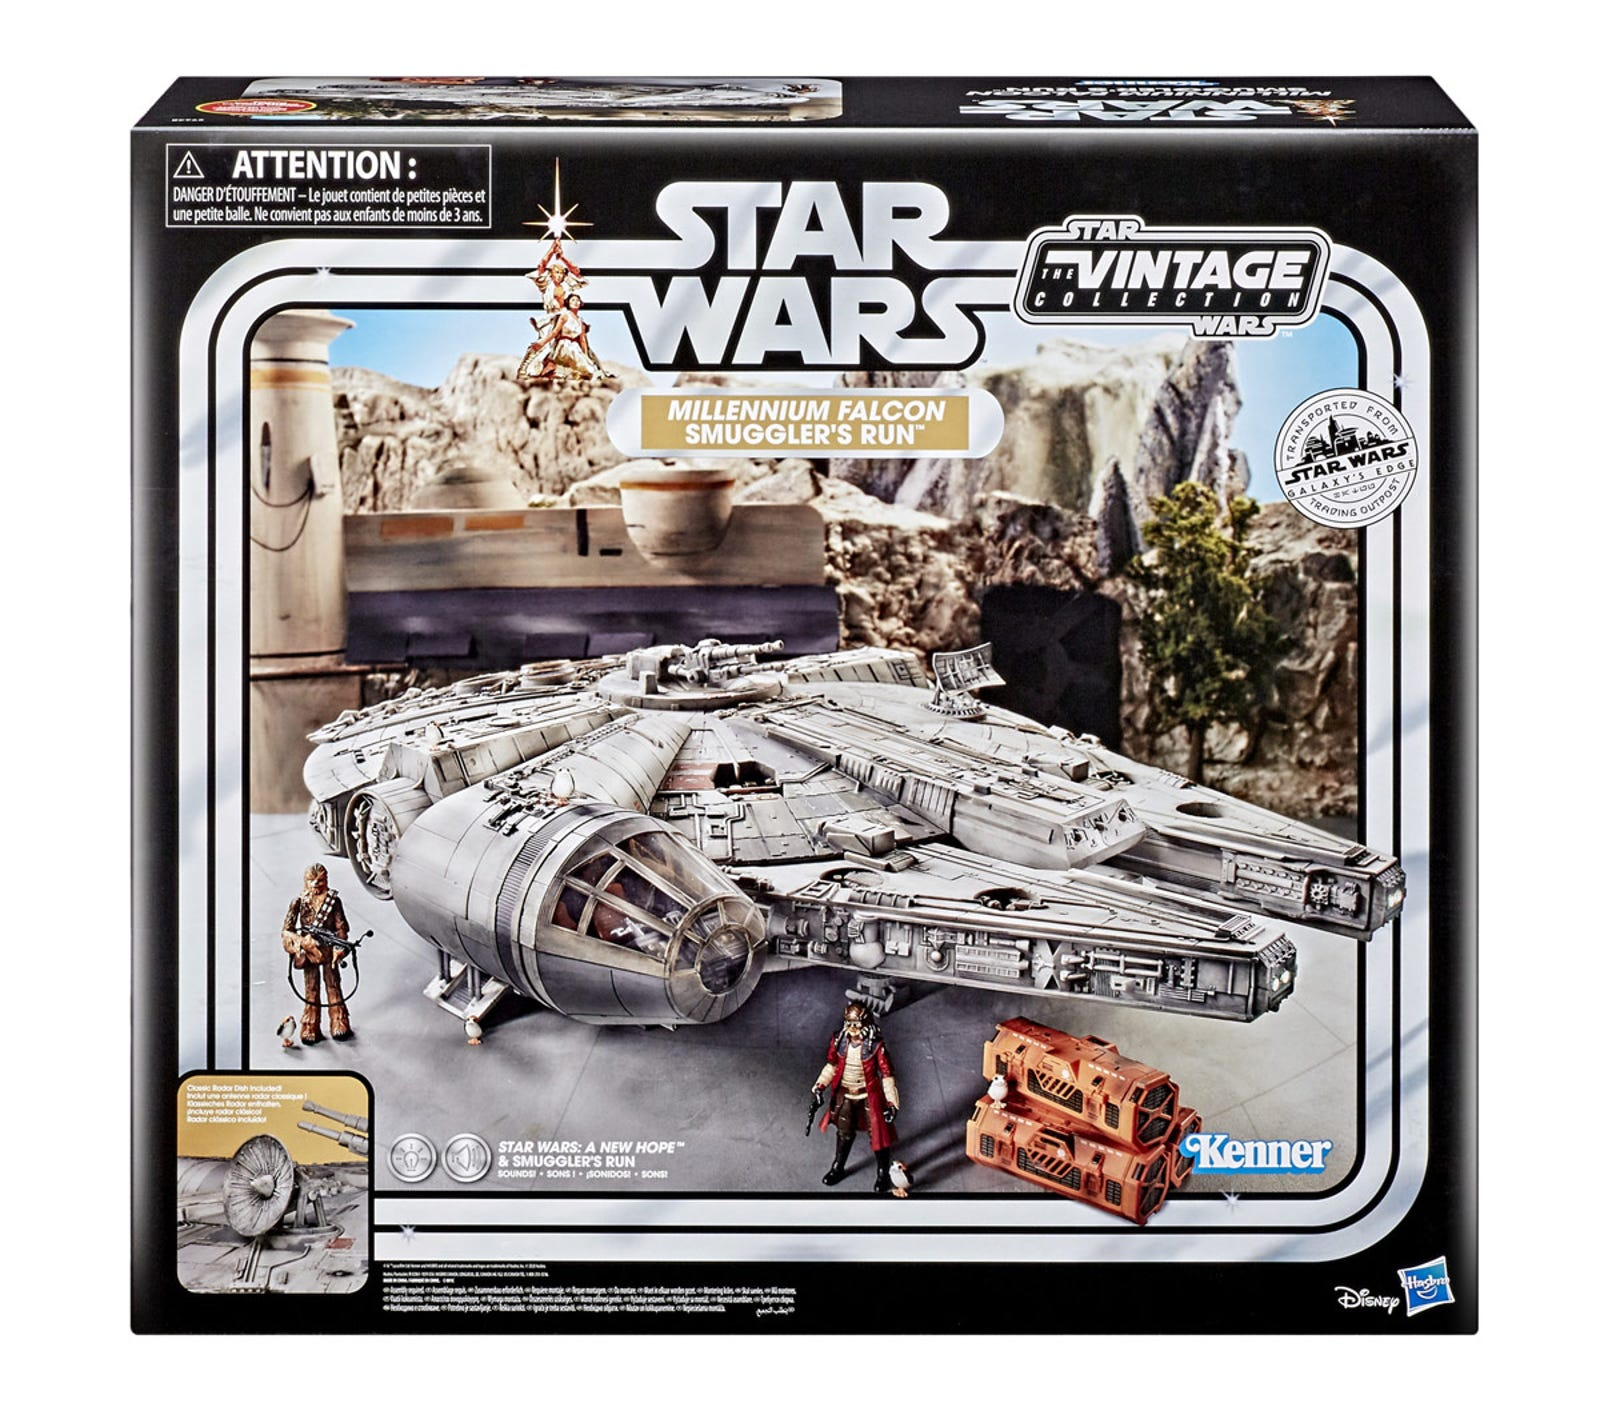 Star Wars The Vintage Collection Galaxy's Edge Millennium Falcon Smuggler's Run, which retails for $400.